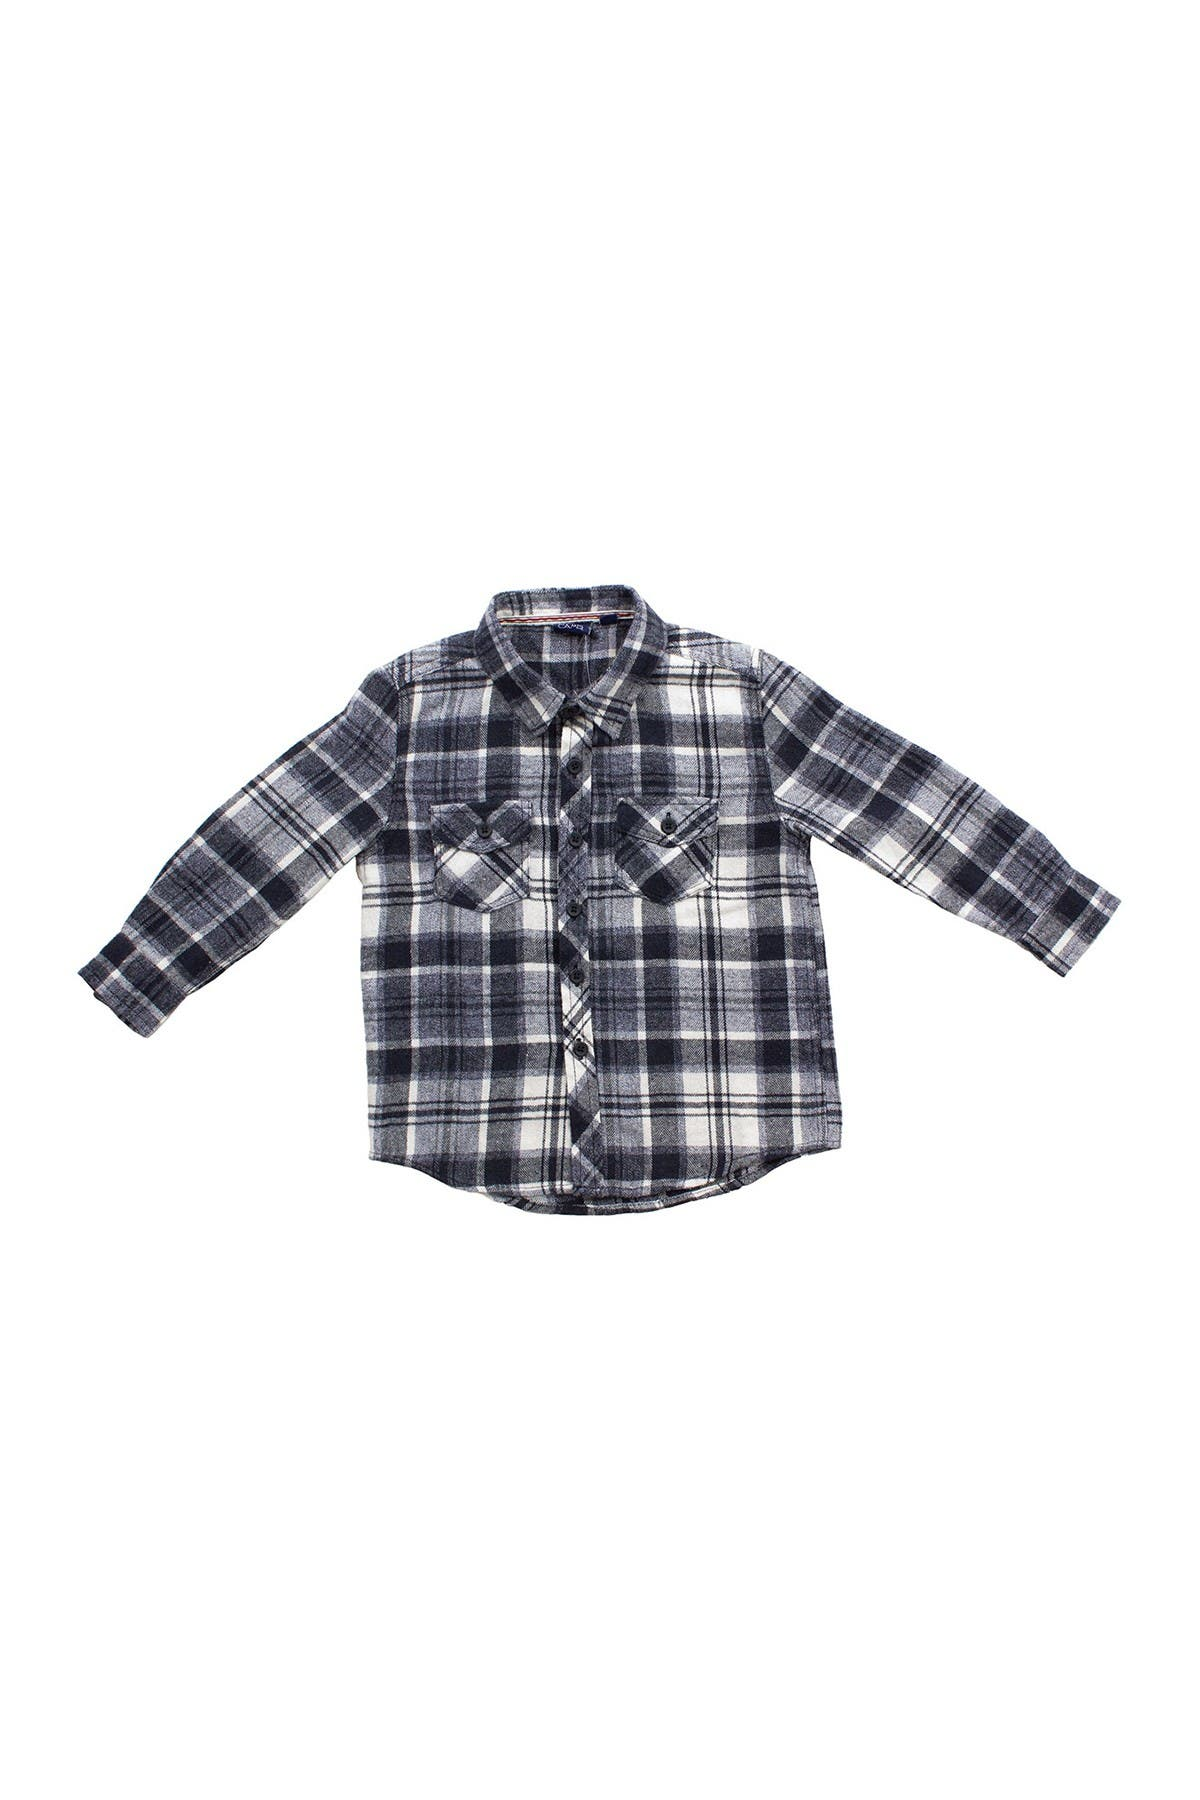 Image of BEAR CAMP Long Sleeve Button Down Flannel